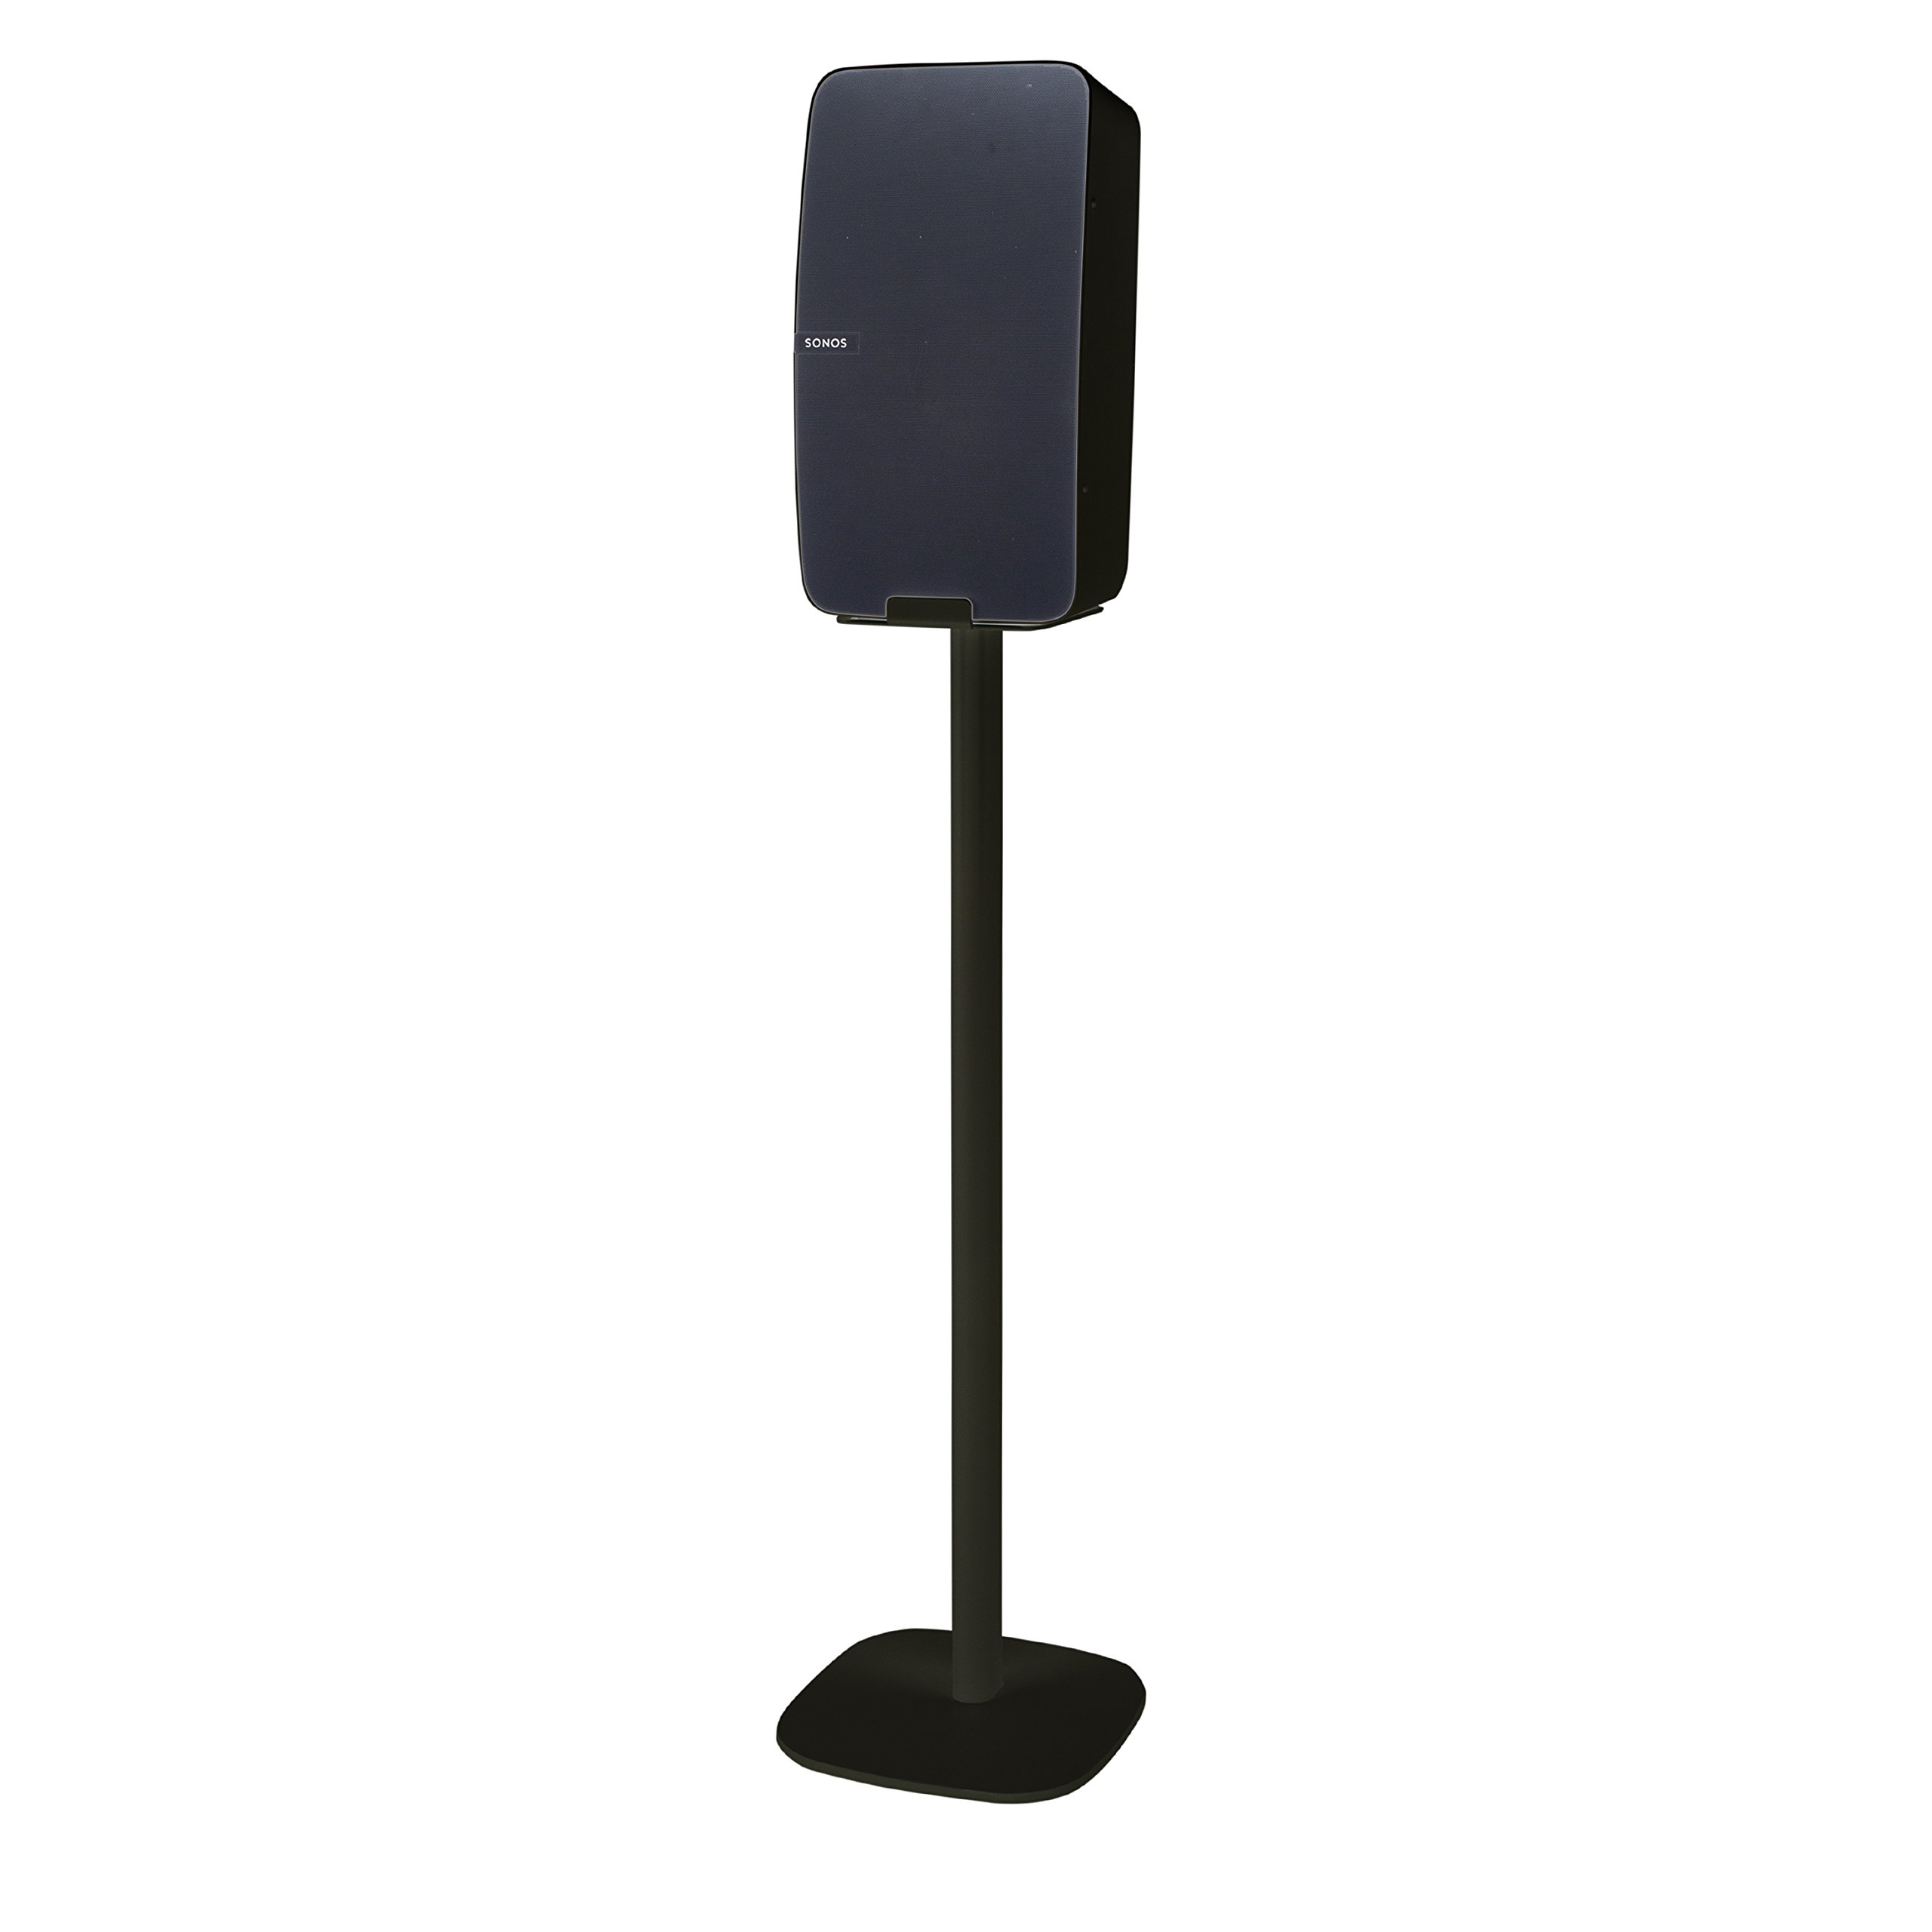 Vebos floor stand Sonos Play 5 gen 2 black - vertical en optimal experience in every room - Allows you to place your SONOS PLAY 5 exactly where you want it - Two years warranty